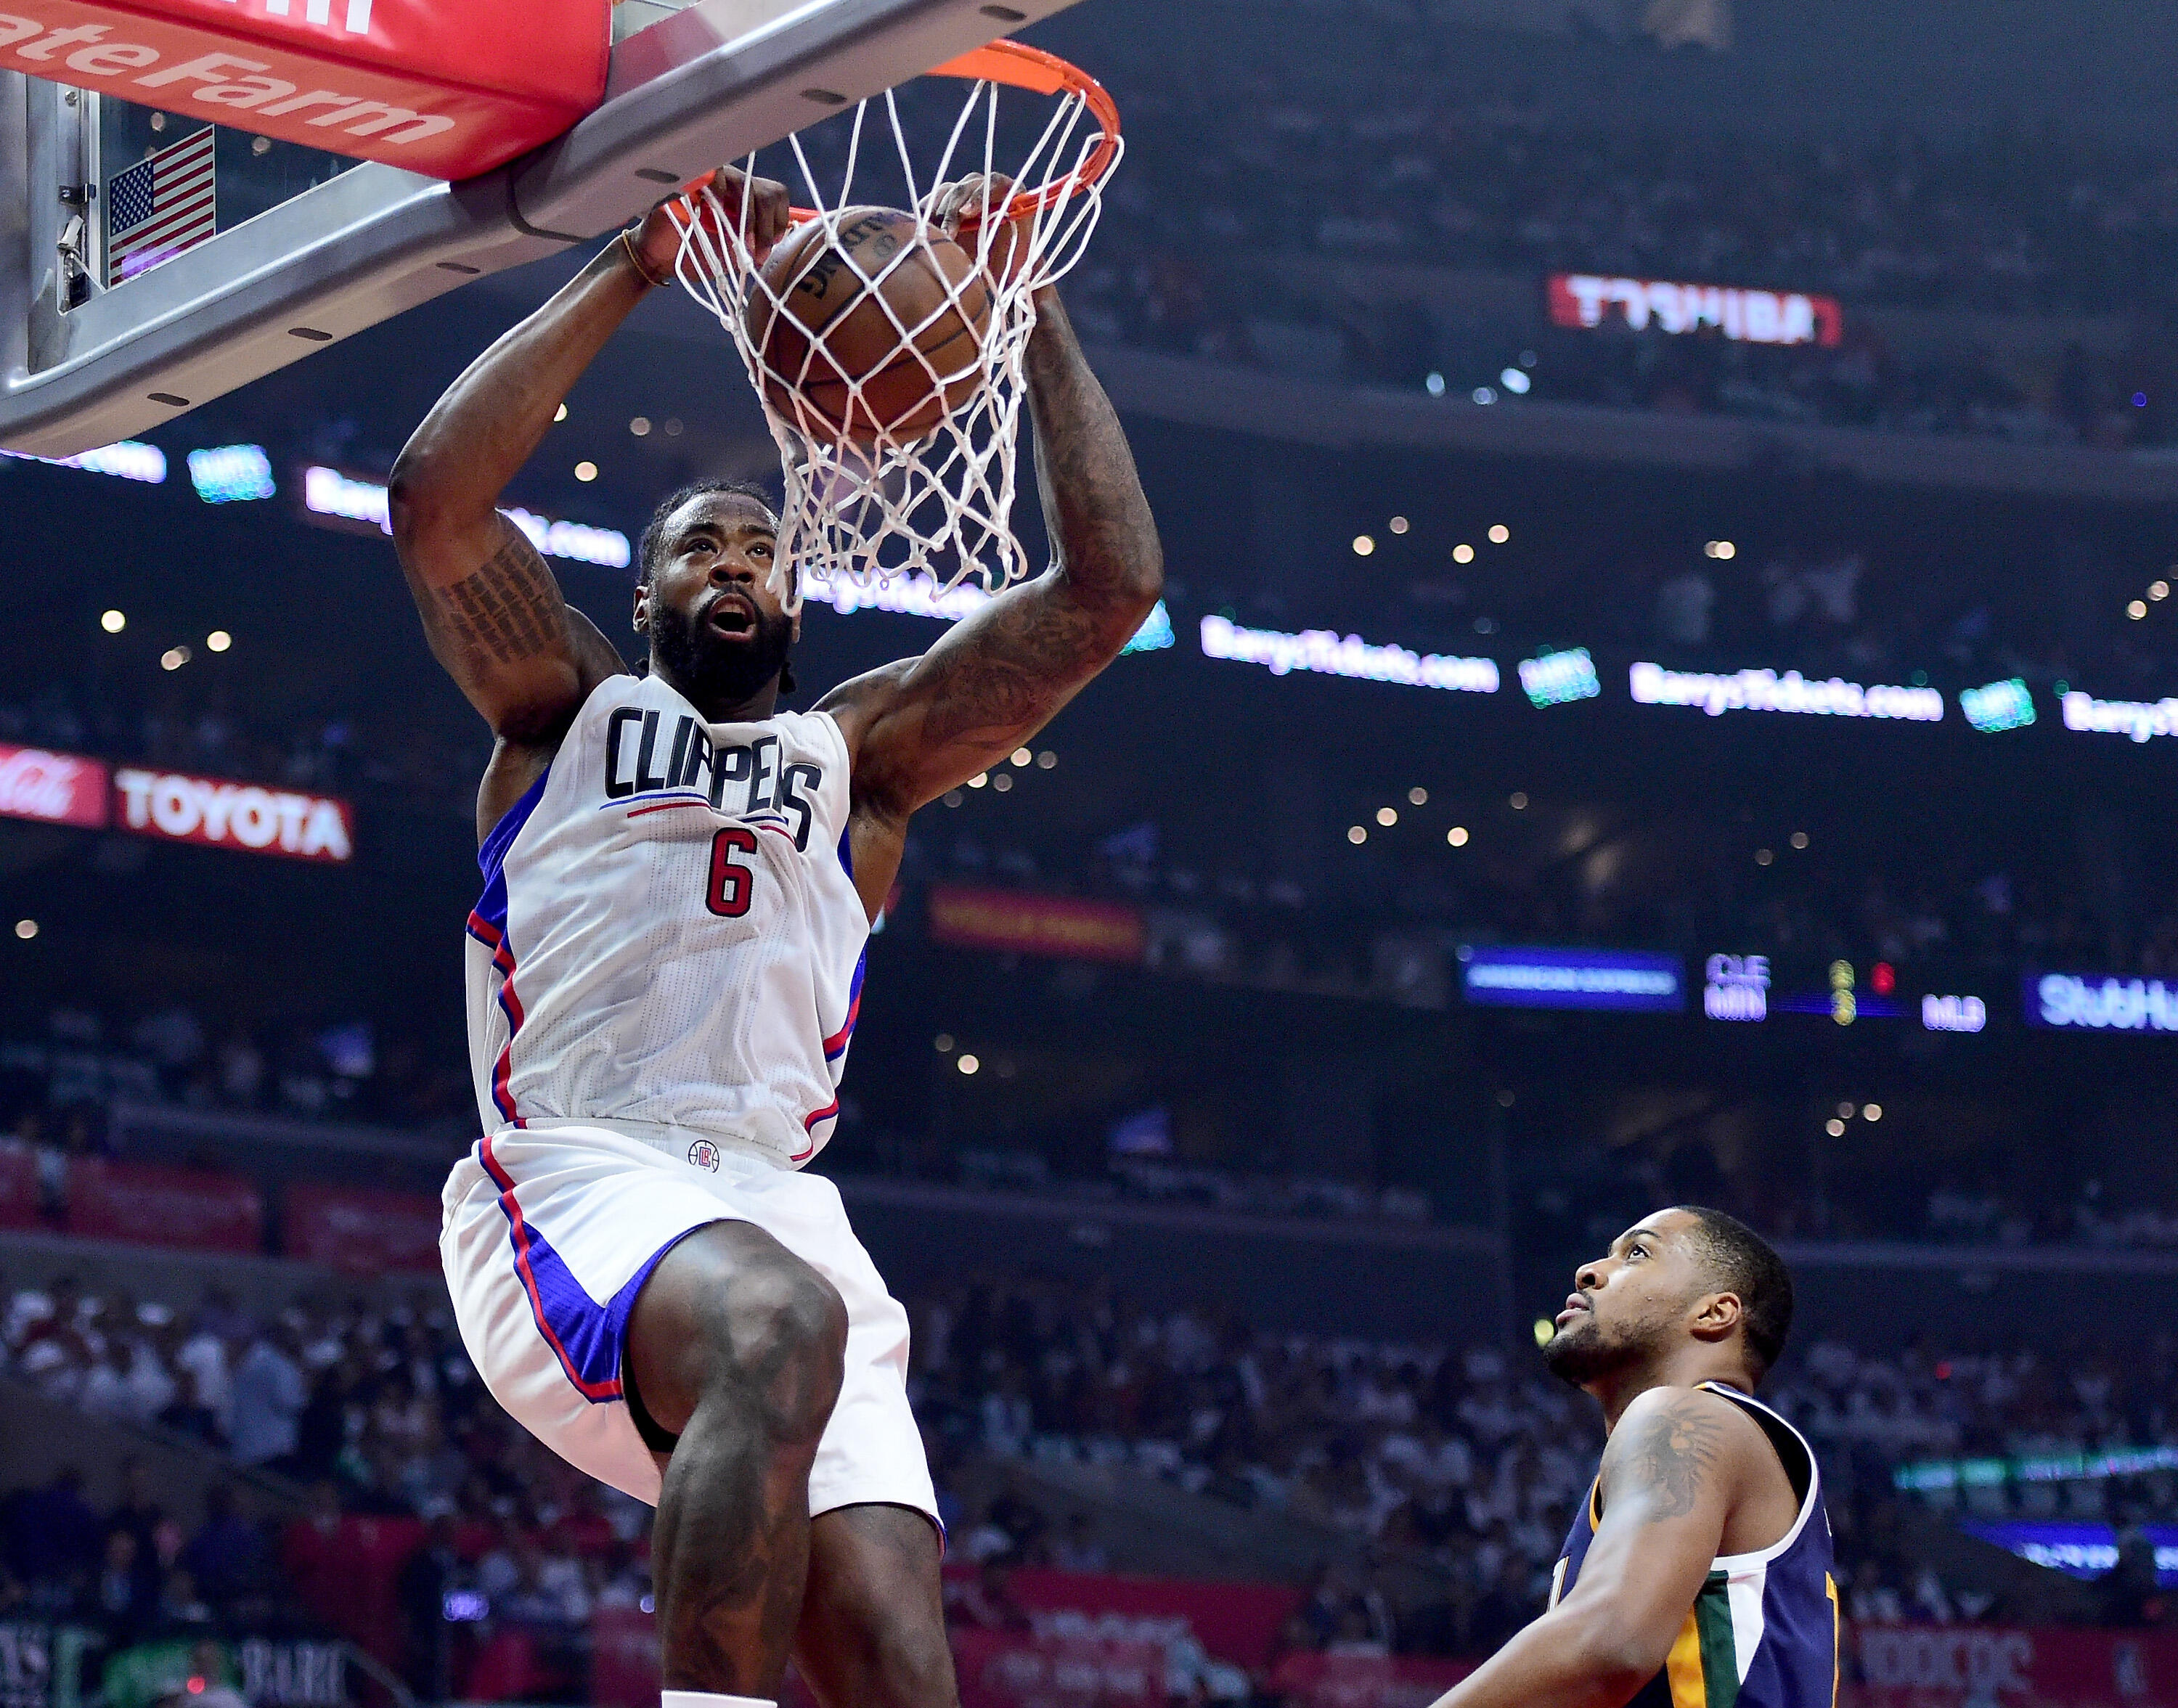 LOS ANGELES, CA - APRIL 18:  DeAndre Jordan #6 of the LA Clippers dunks in front of Derrick Favors #15 of the Utah Jazz during the first half in Game Two of the Western Conference Quarterfinals during the 2017 NBA Playoffs at Staples Center on April 18, 2